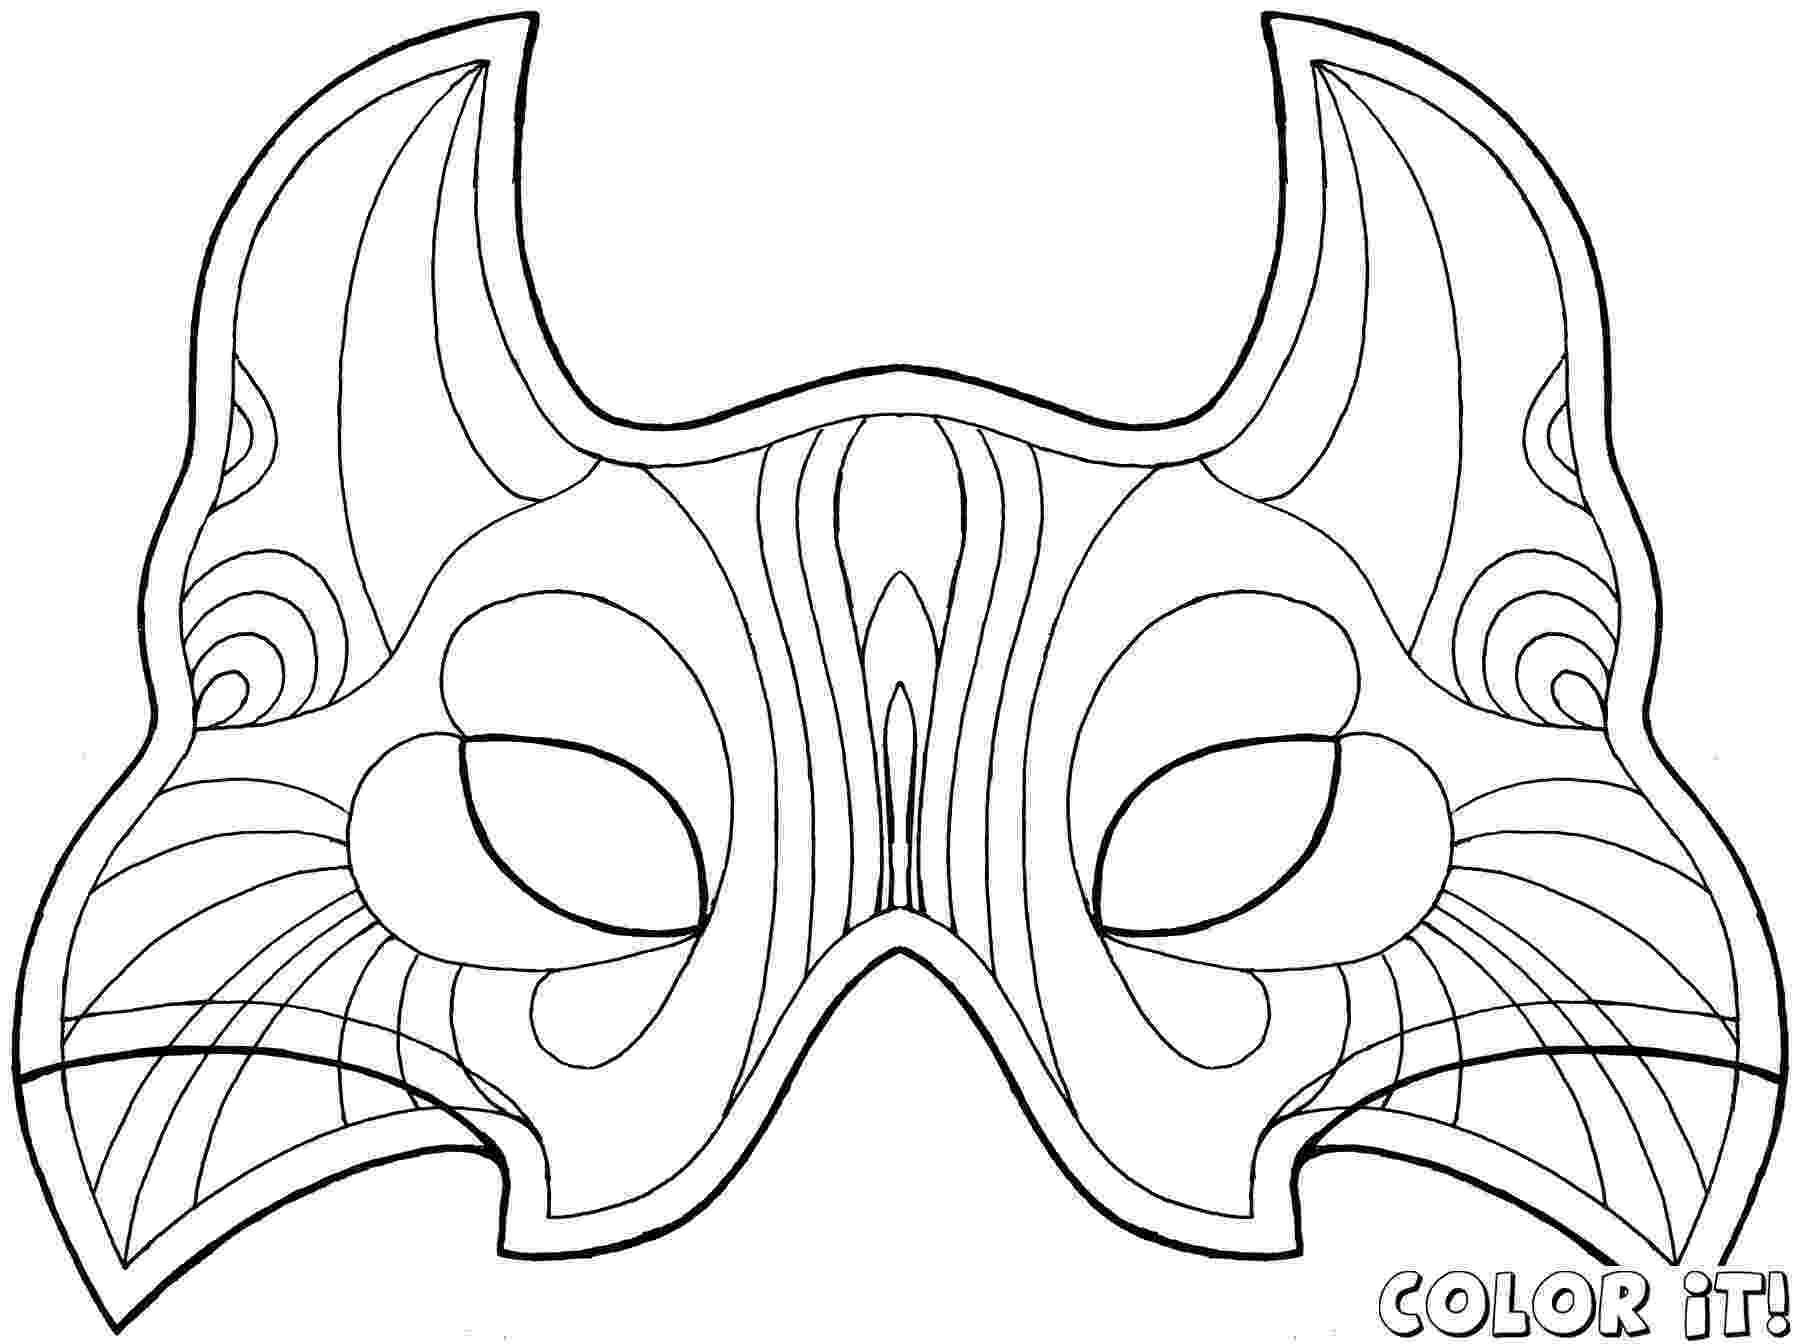 carnival mask coloring page carnival mask designs for coloring book for adult stock mask page carnival coloring